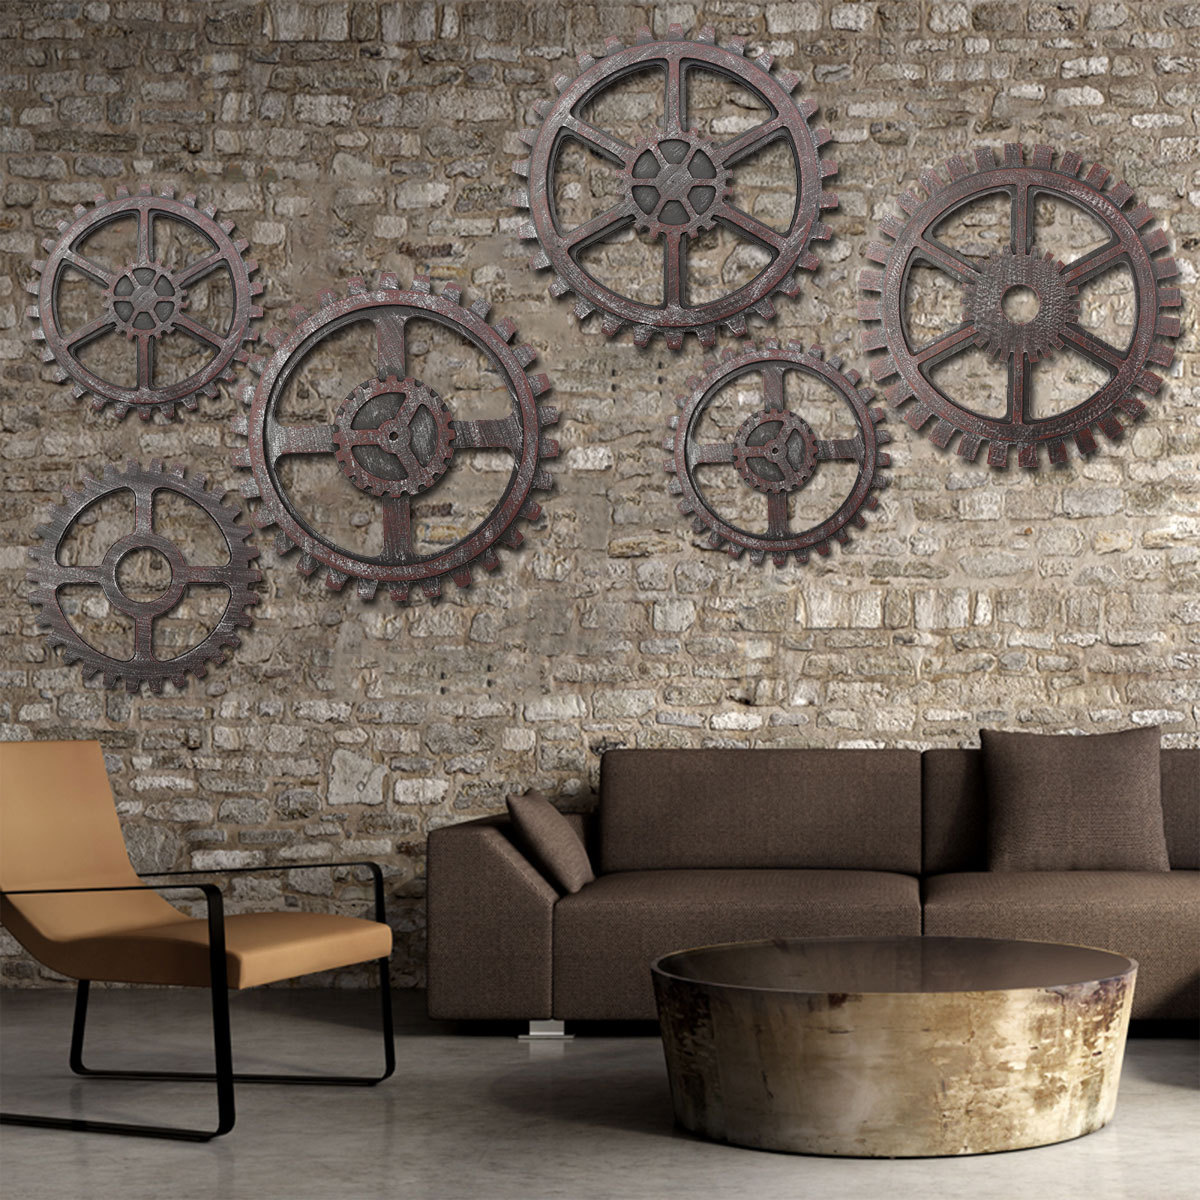 Antique Wall Decor Wooden Gear Wall Art Industrial Antique Vintage Chic